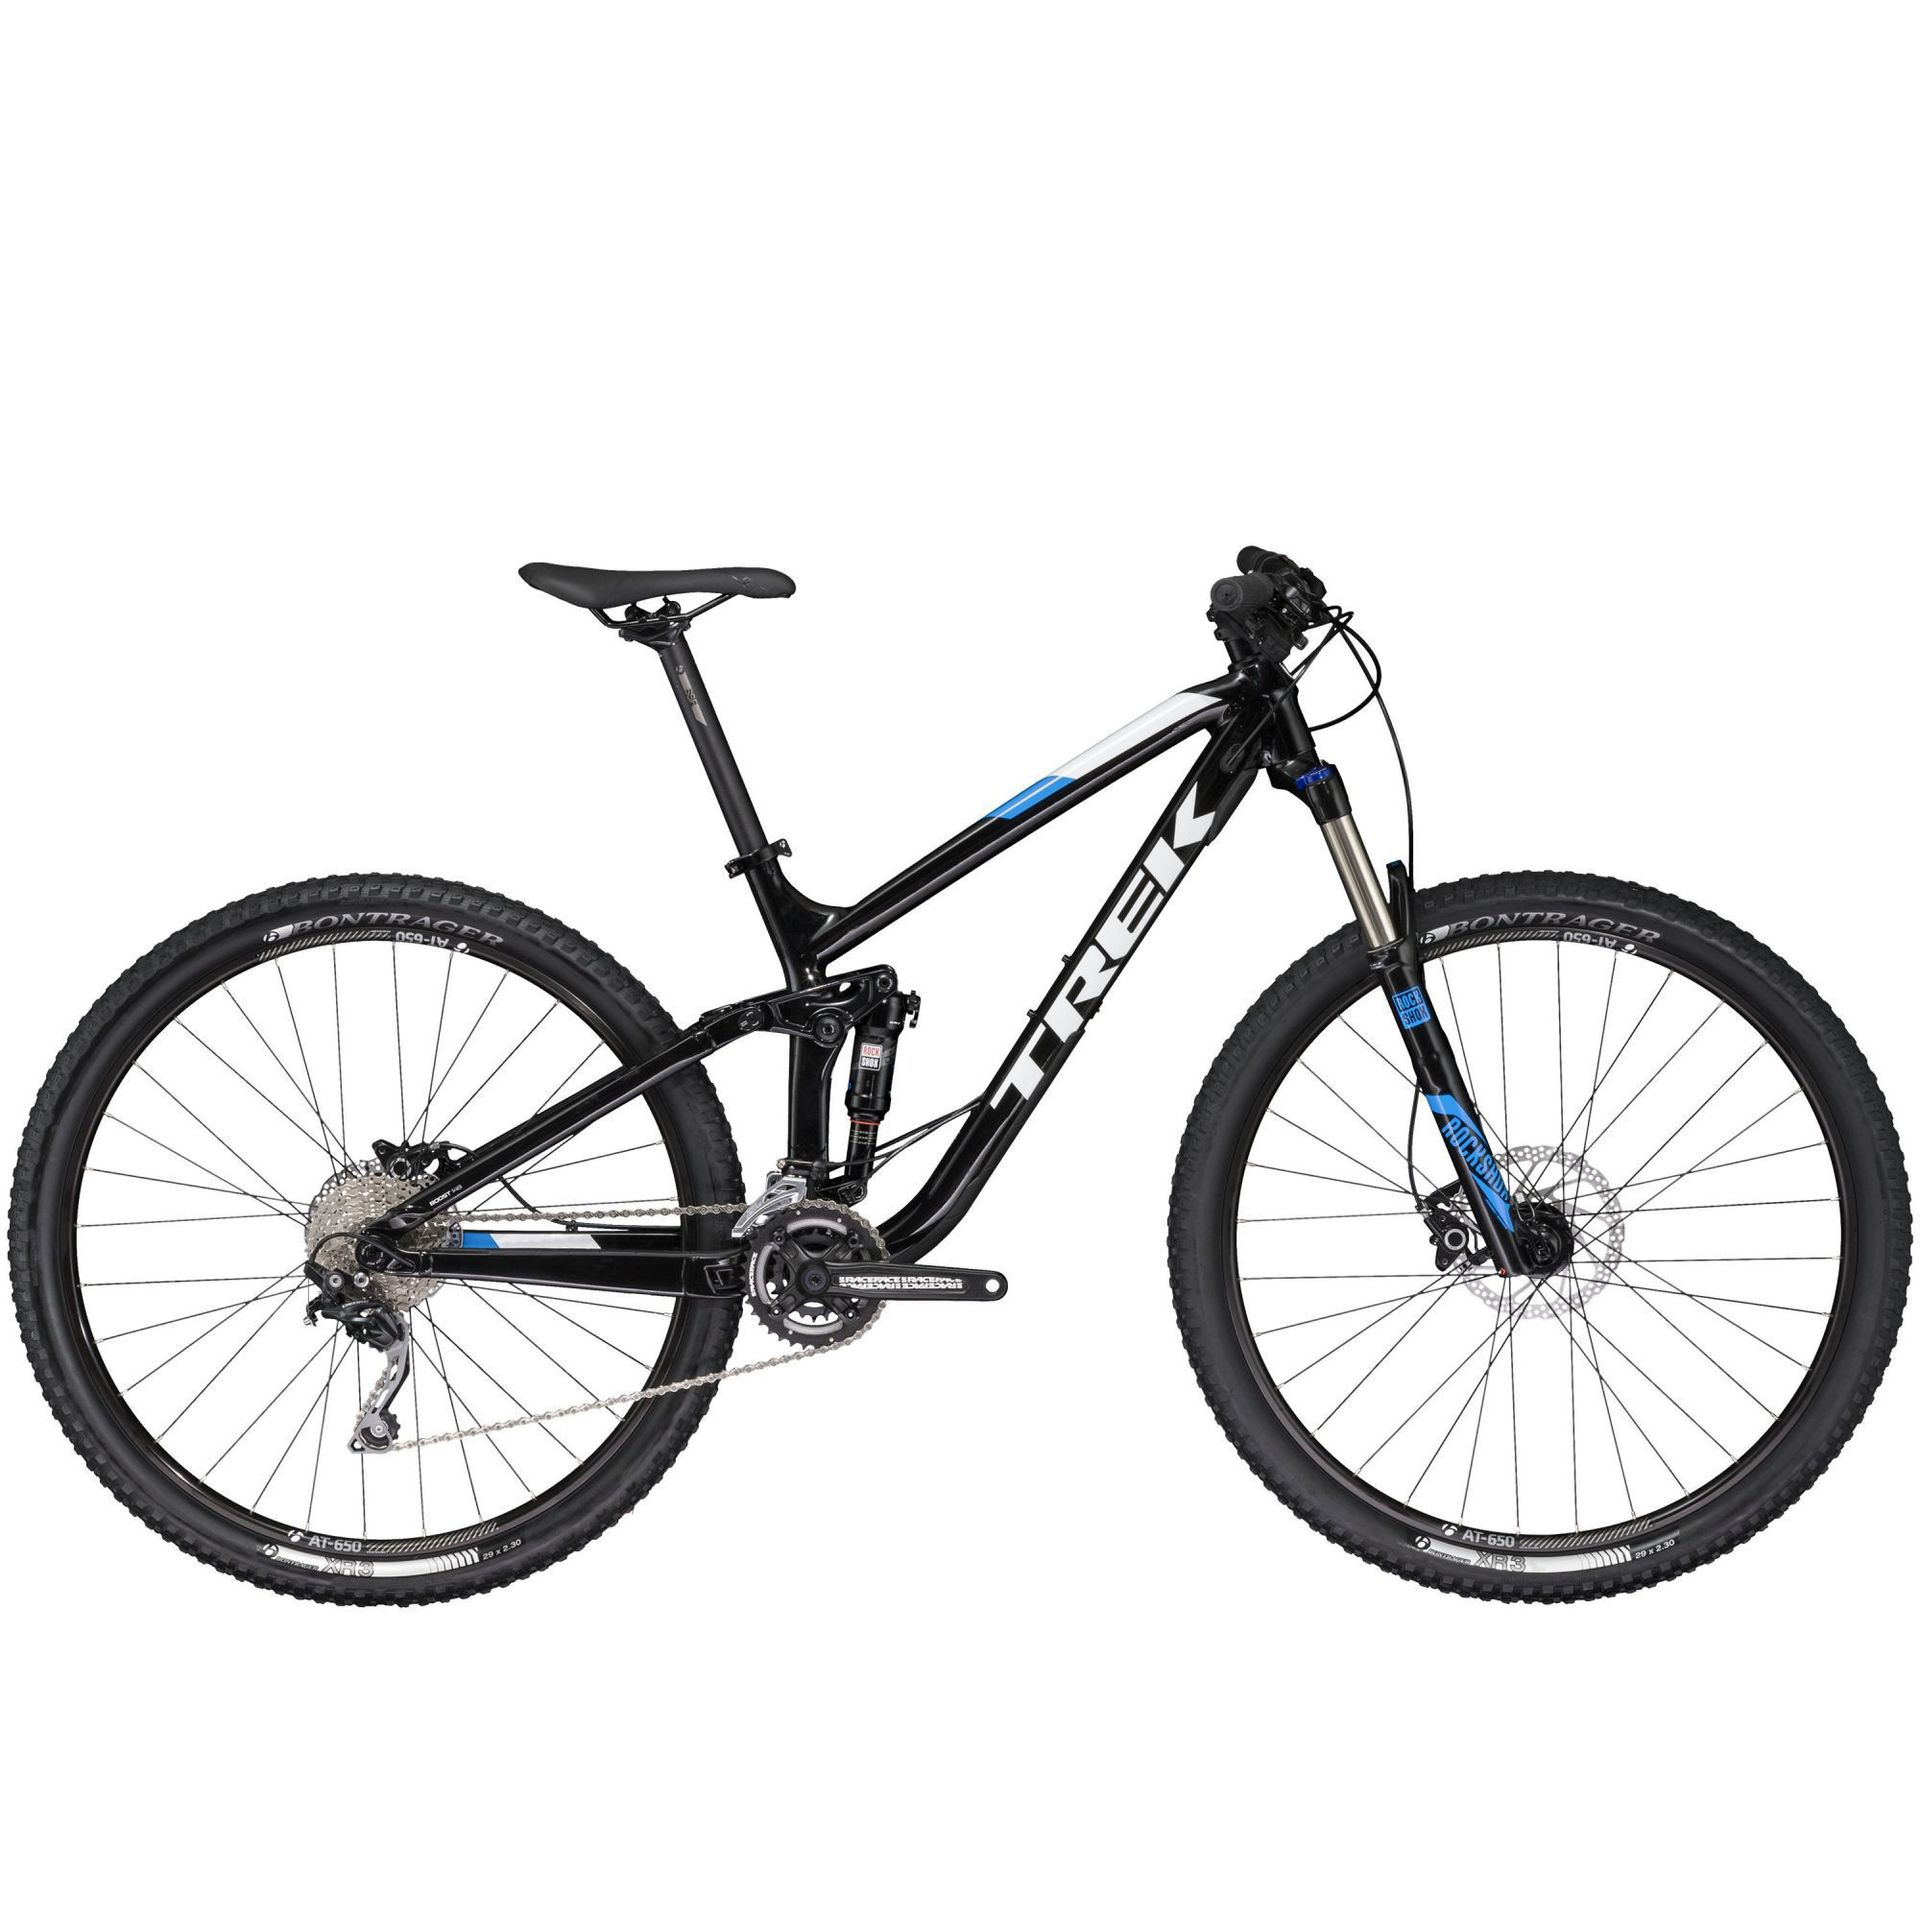 ROWER TREK FUEL EX 9 2017 29 TREK BLACK 1